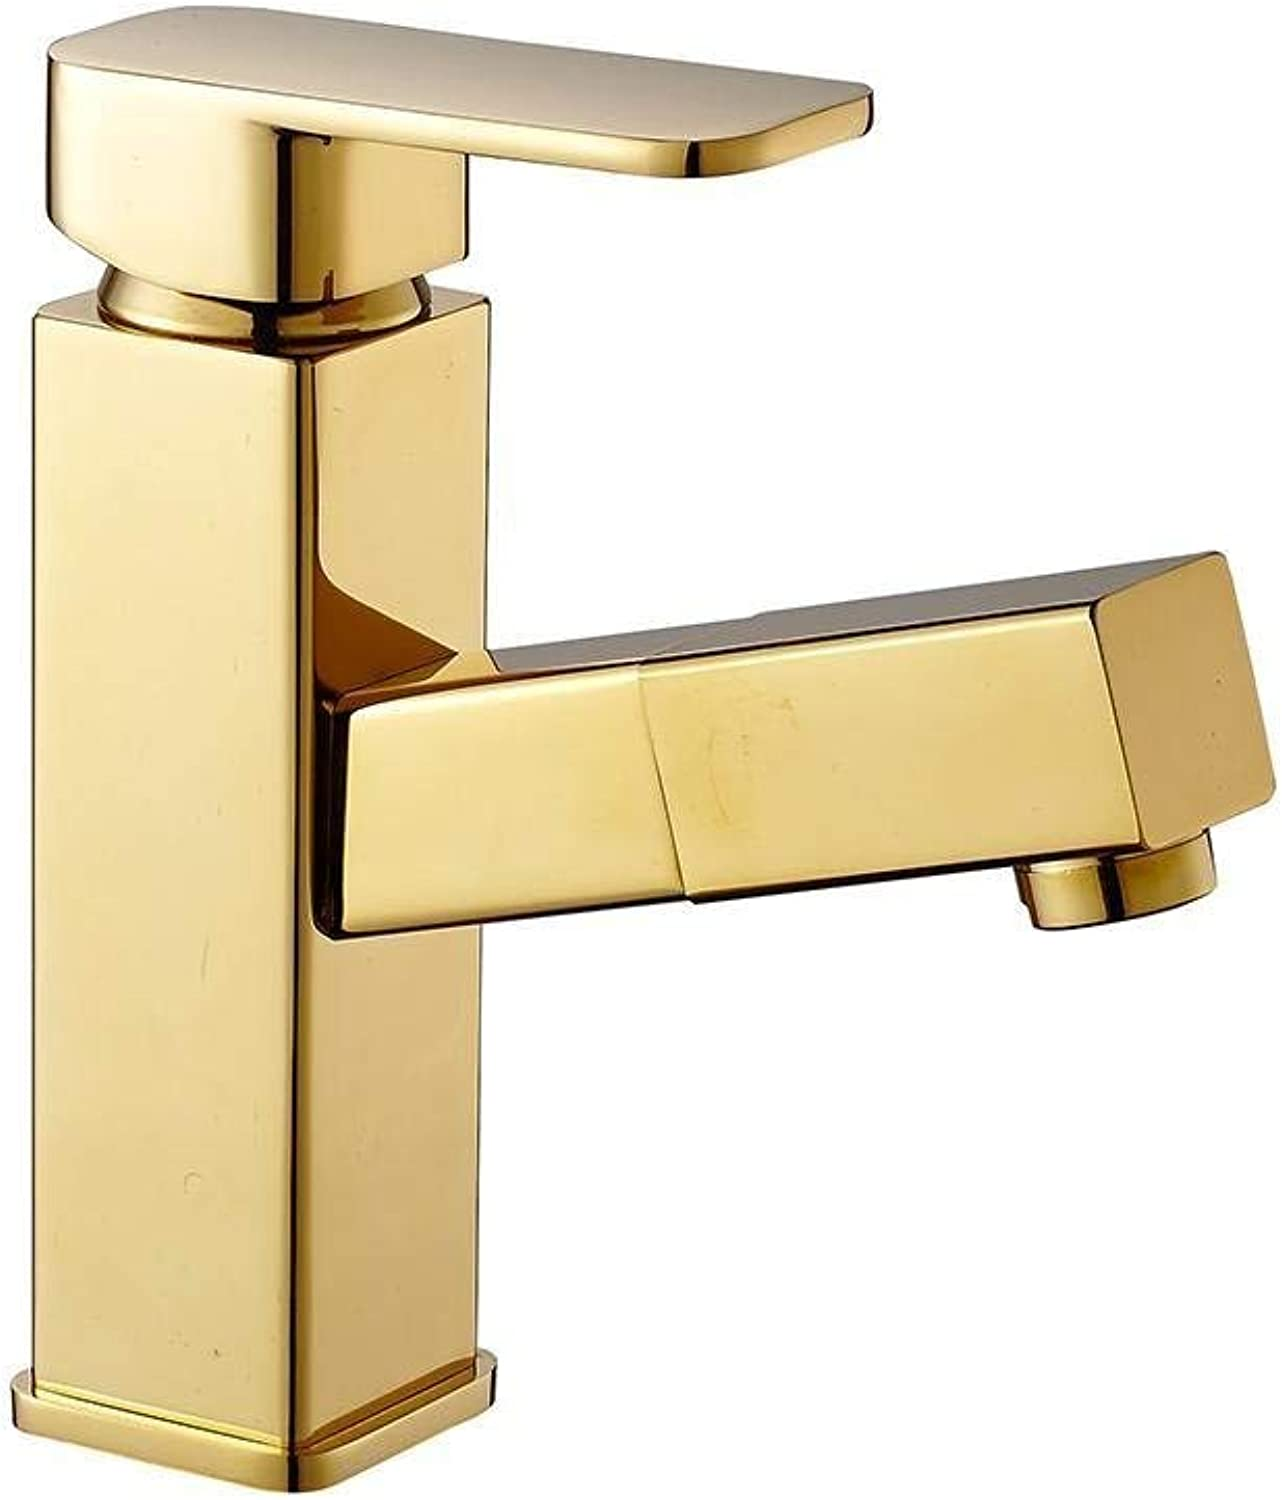 Bathroom Kitchen Sink Faucet,golden Modern Design Style Wash 360 Degree Cold and Hot Mixing Faucet.